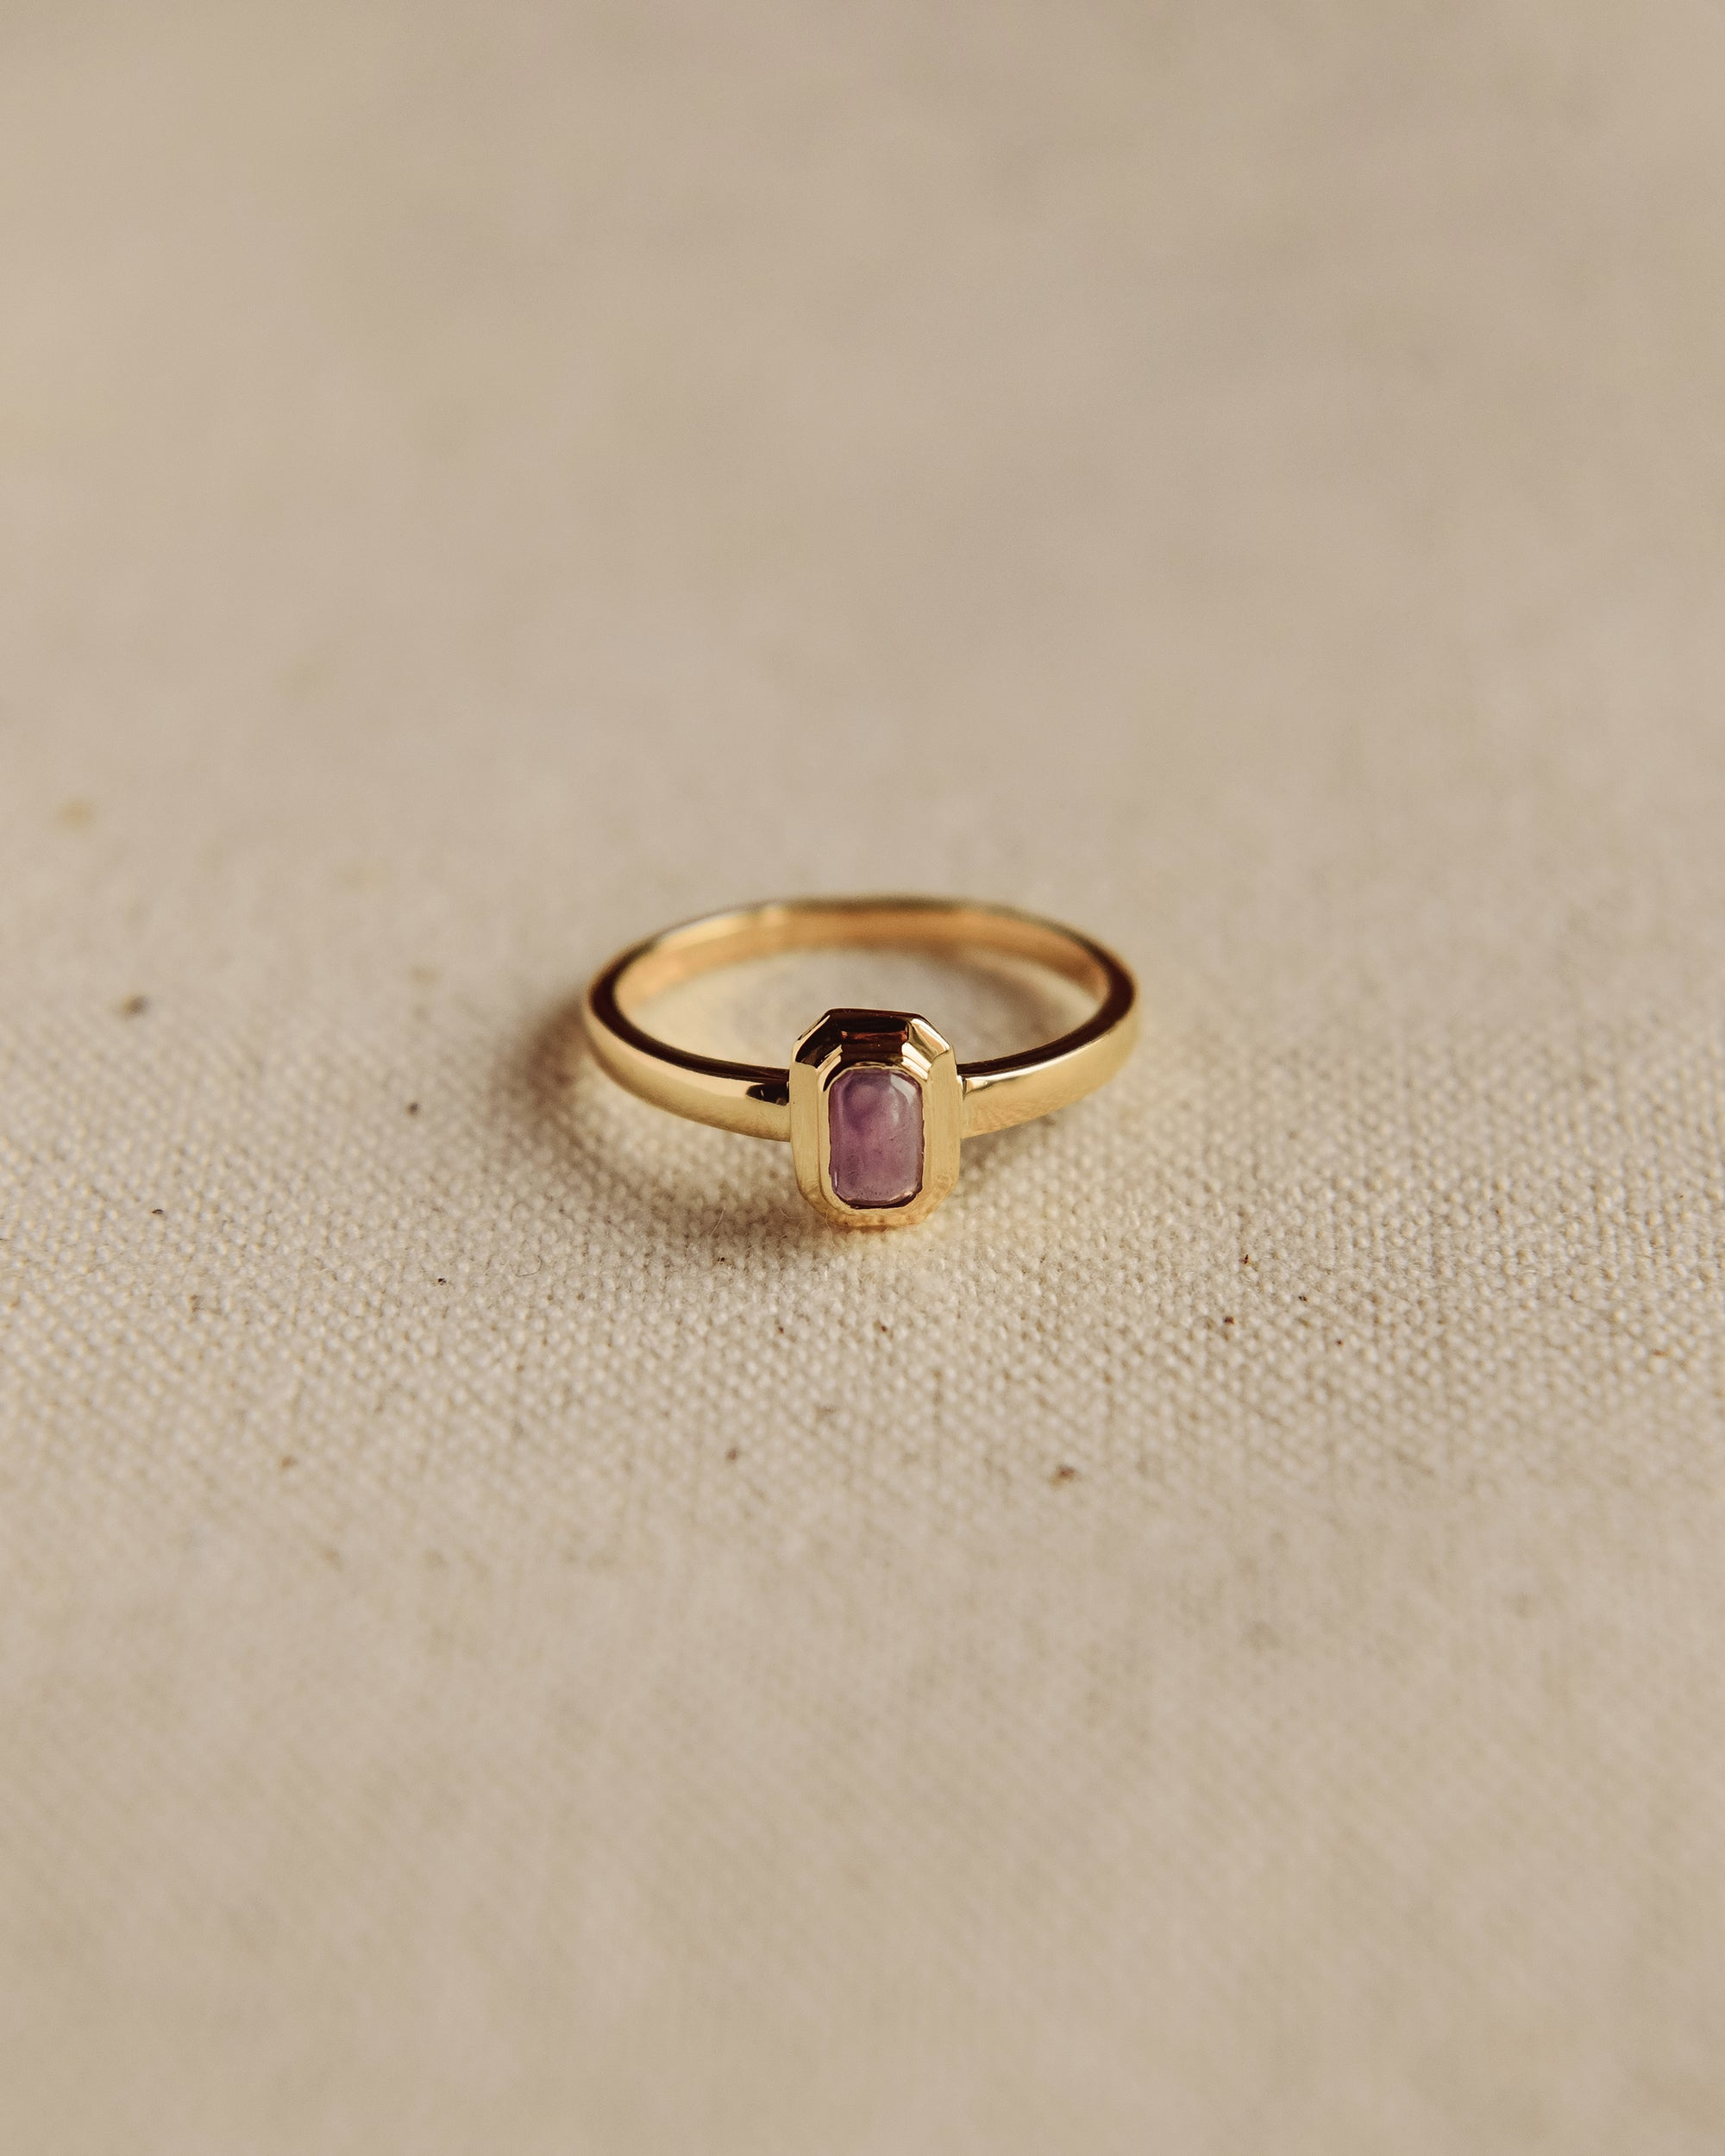 Image of Frances Gold Vermeil Birthstone Ring - February